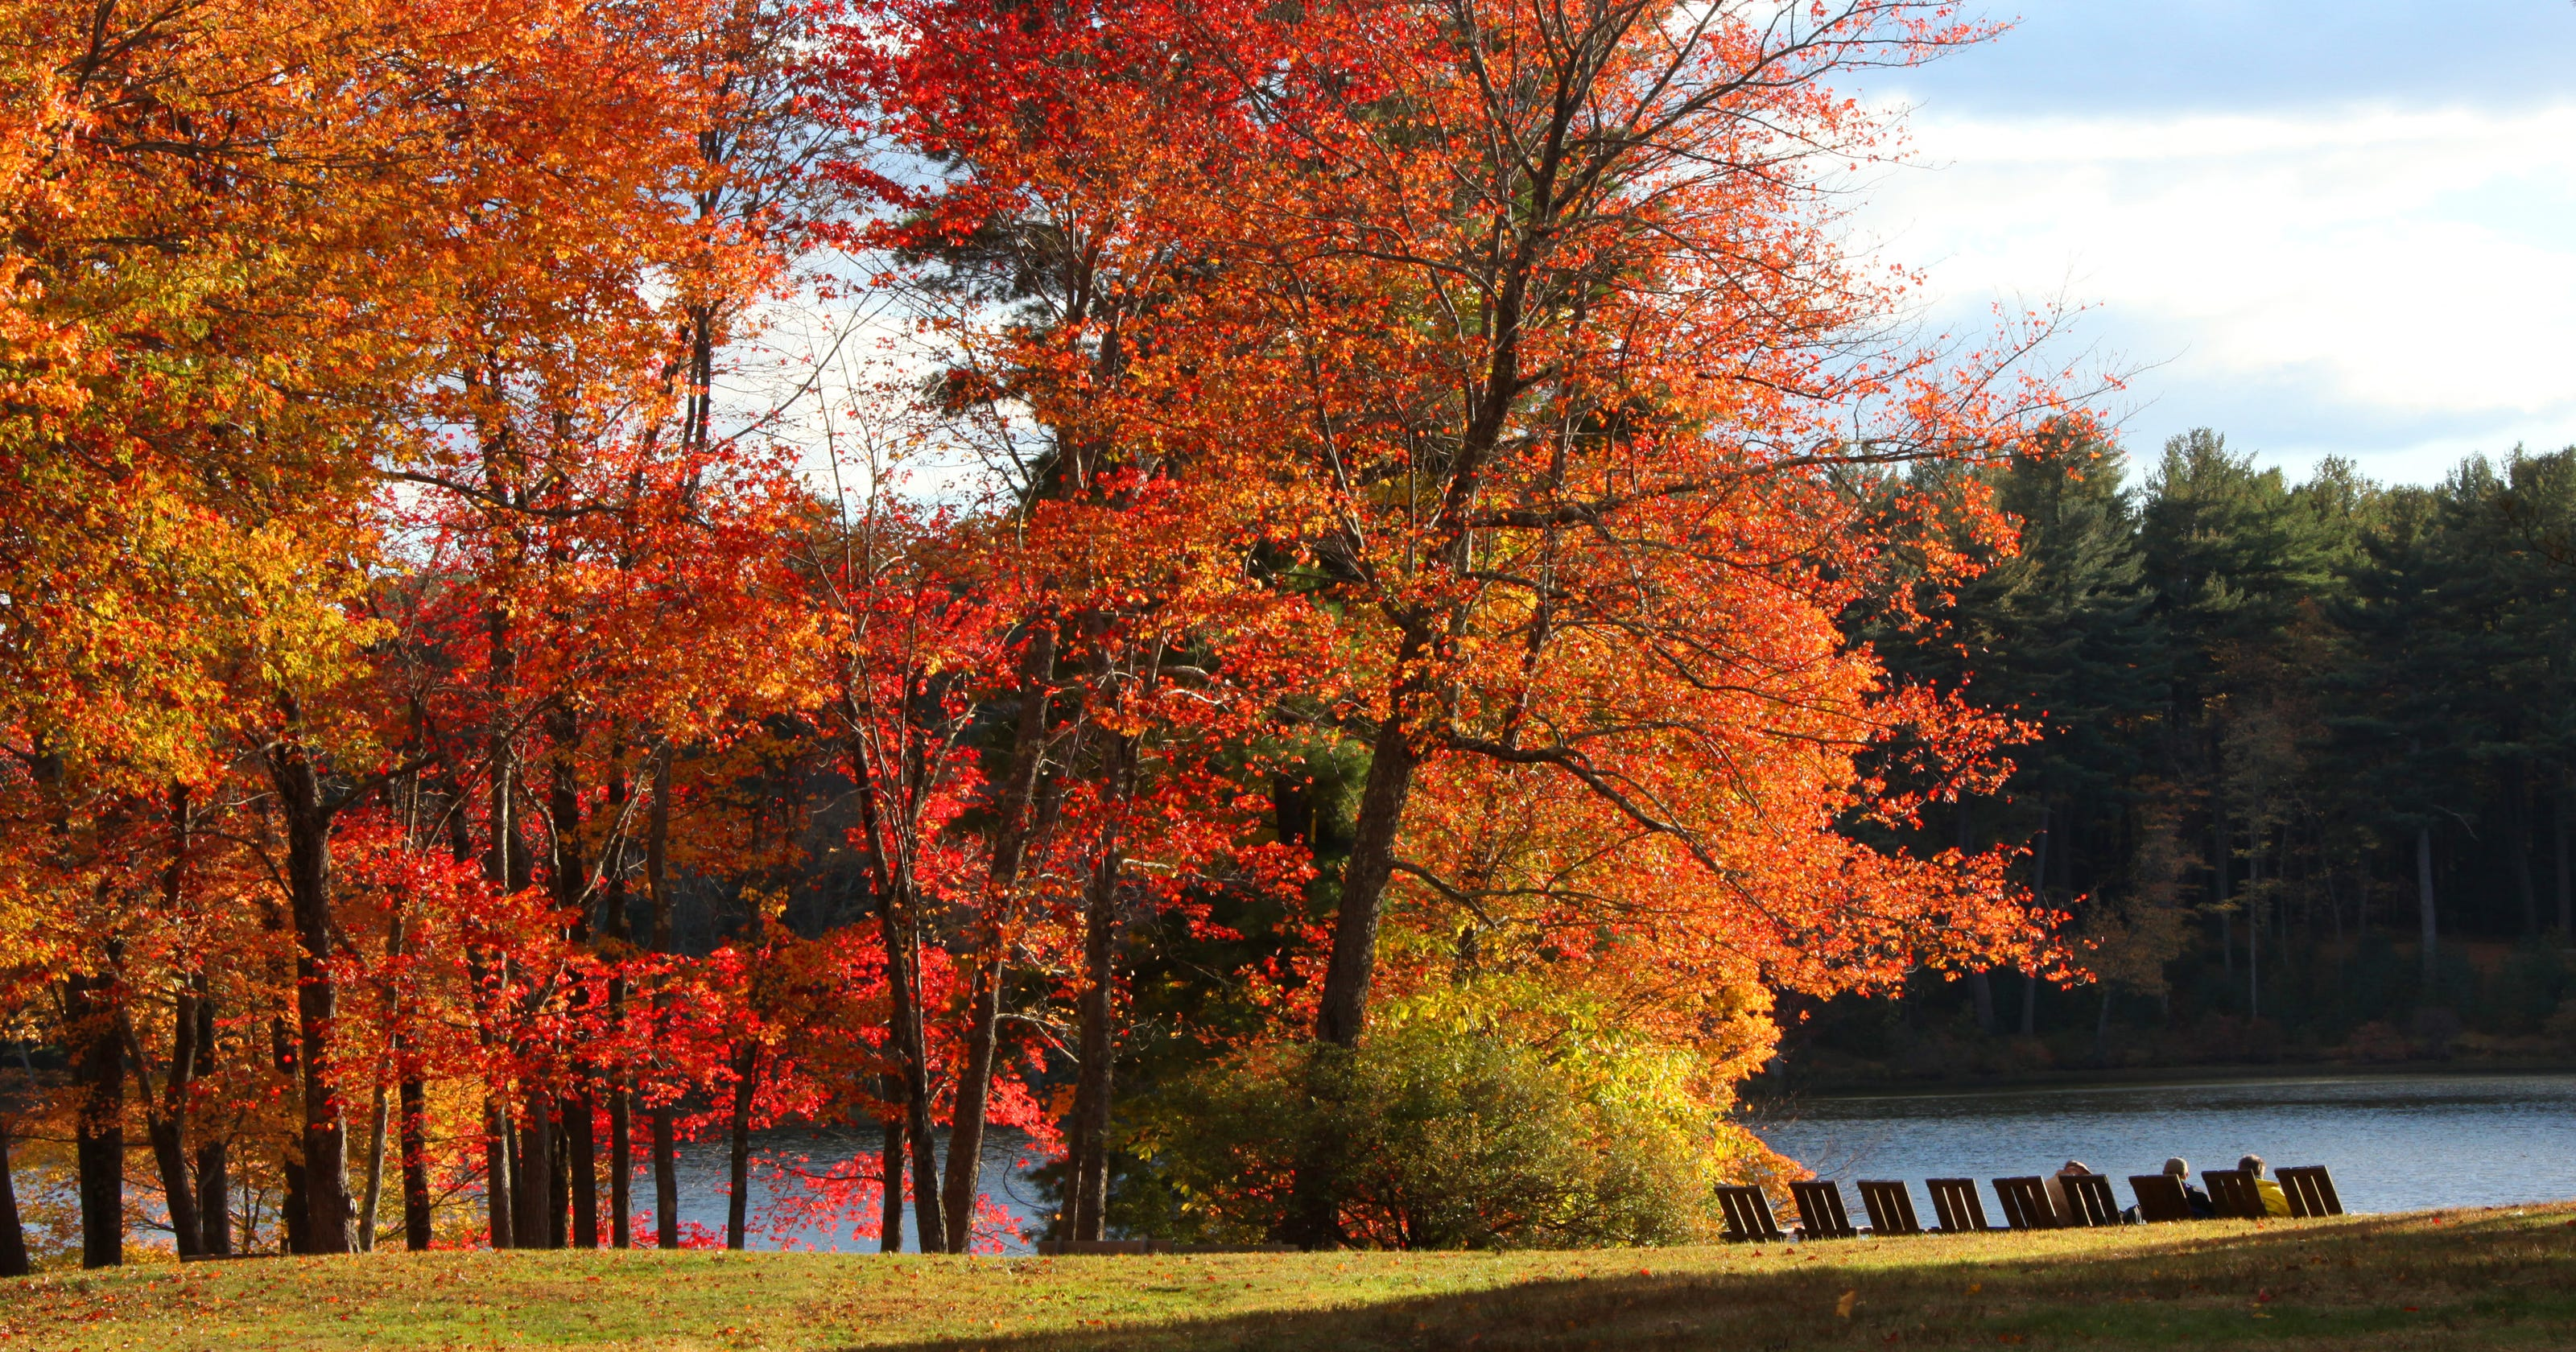 Fall foliage forecast for 2020: How will leaf peeping look this year?